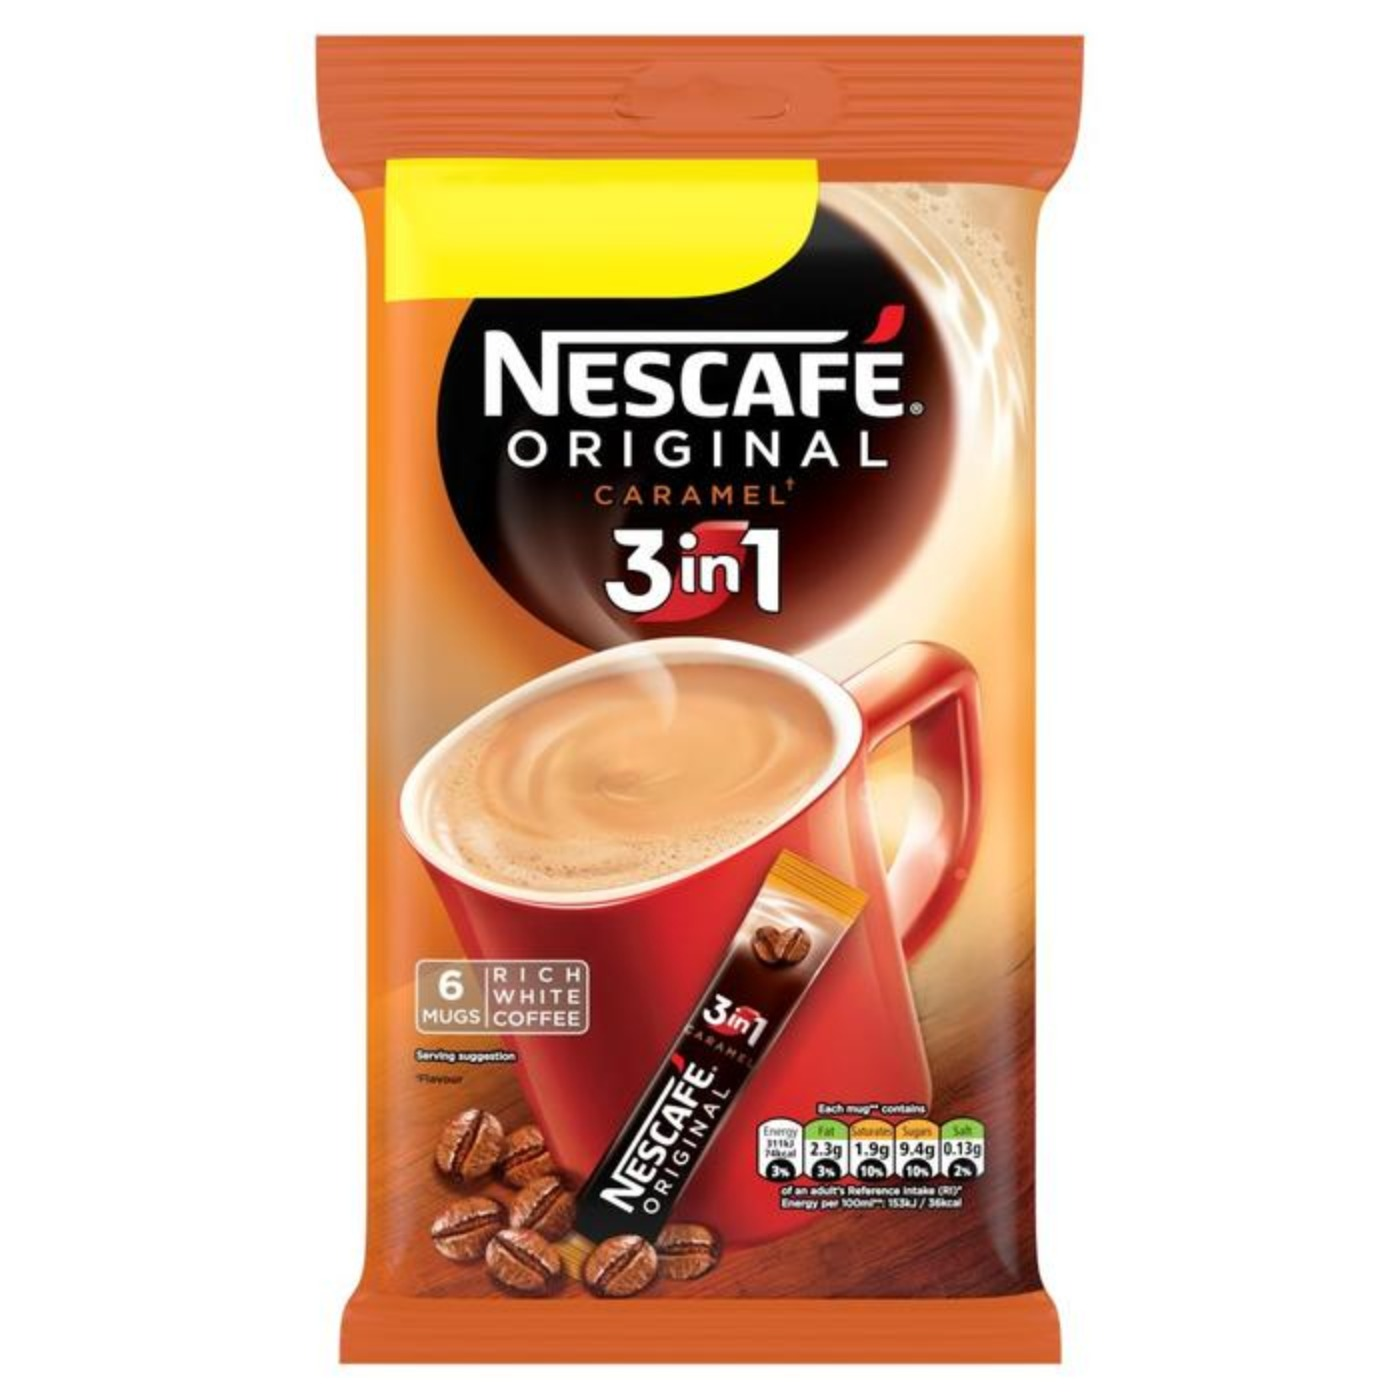 Nescafe Original Caramel Sachets 1x6 packs